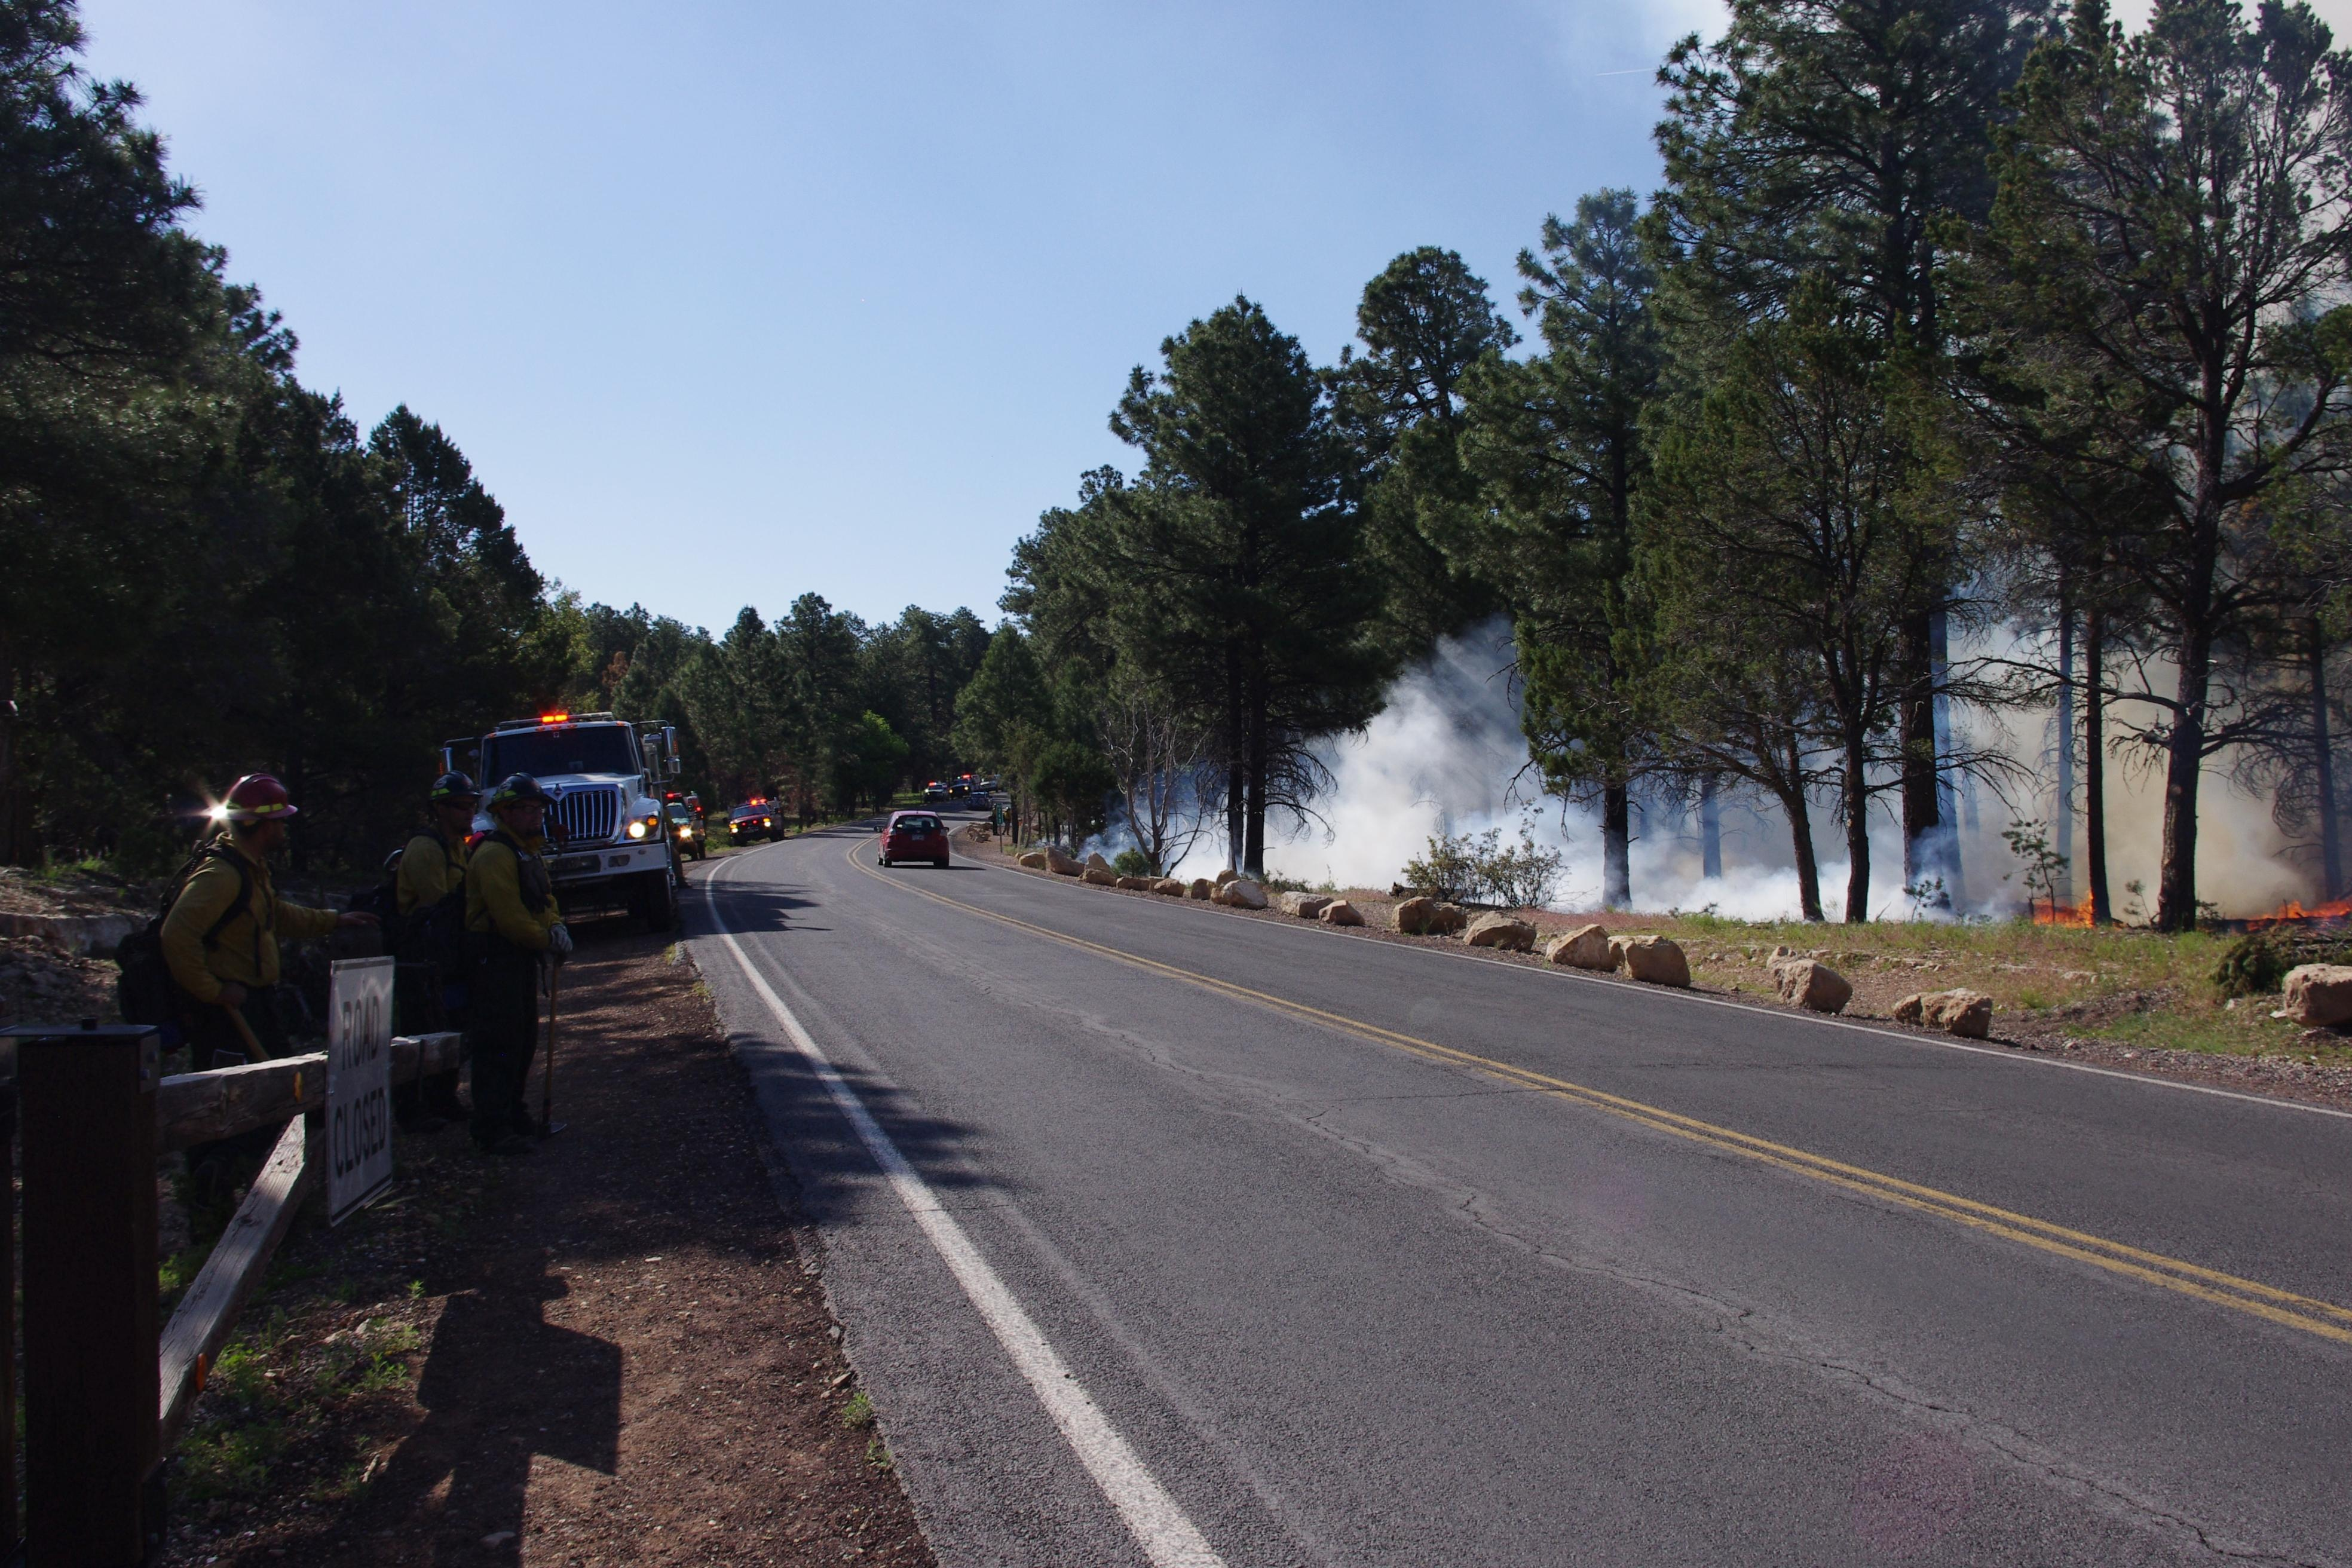 Fire personnel and equipment staged along Highway 64; smoke from Long Jim prescribed fire visible